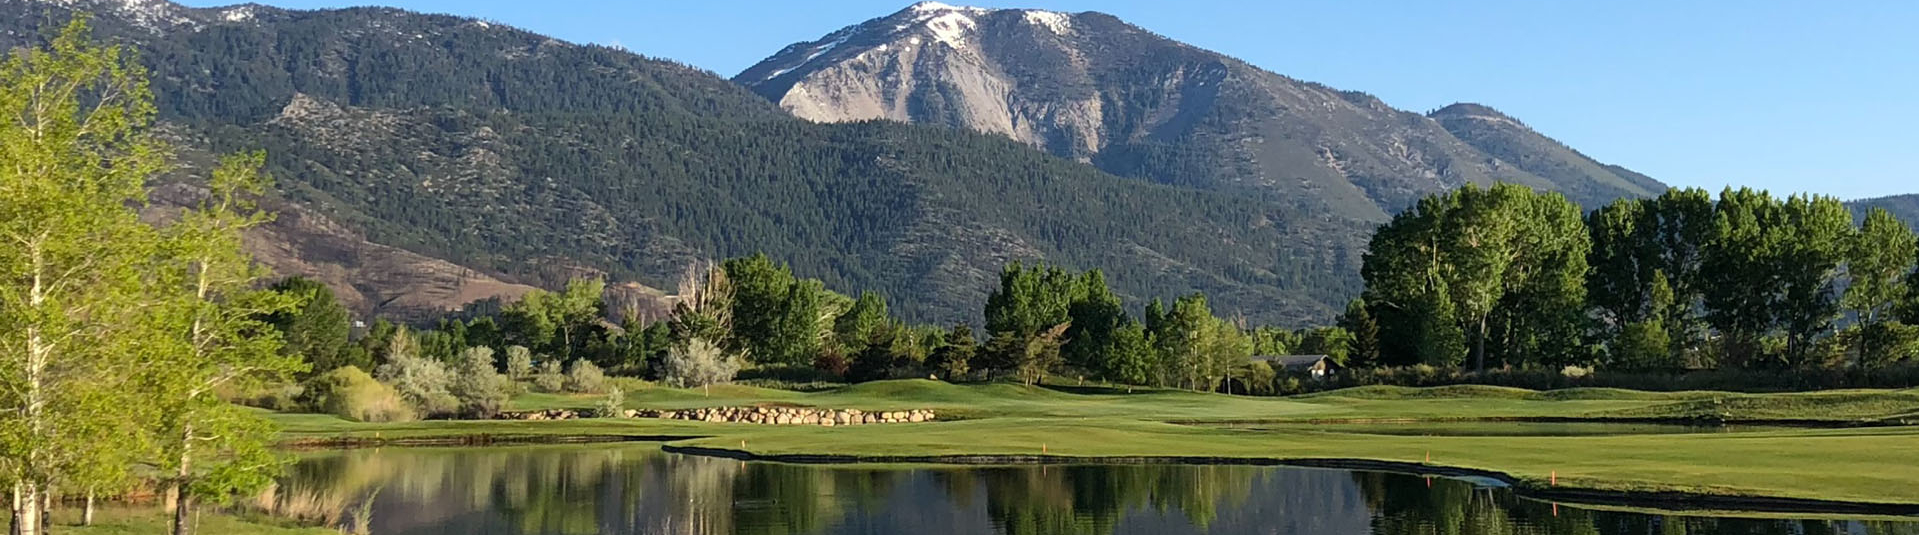 view of a pond on the course at Toiyabe Golf Club